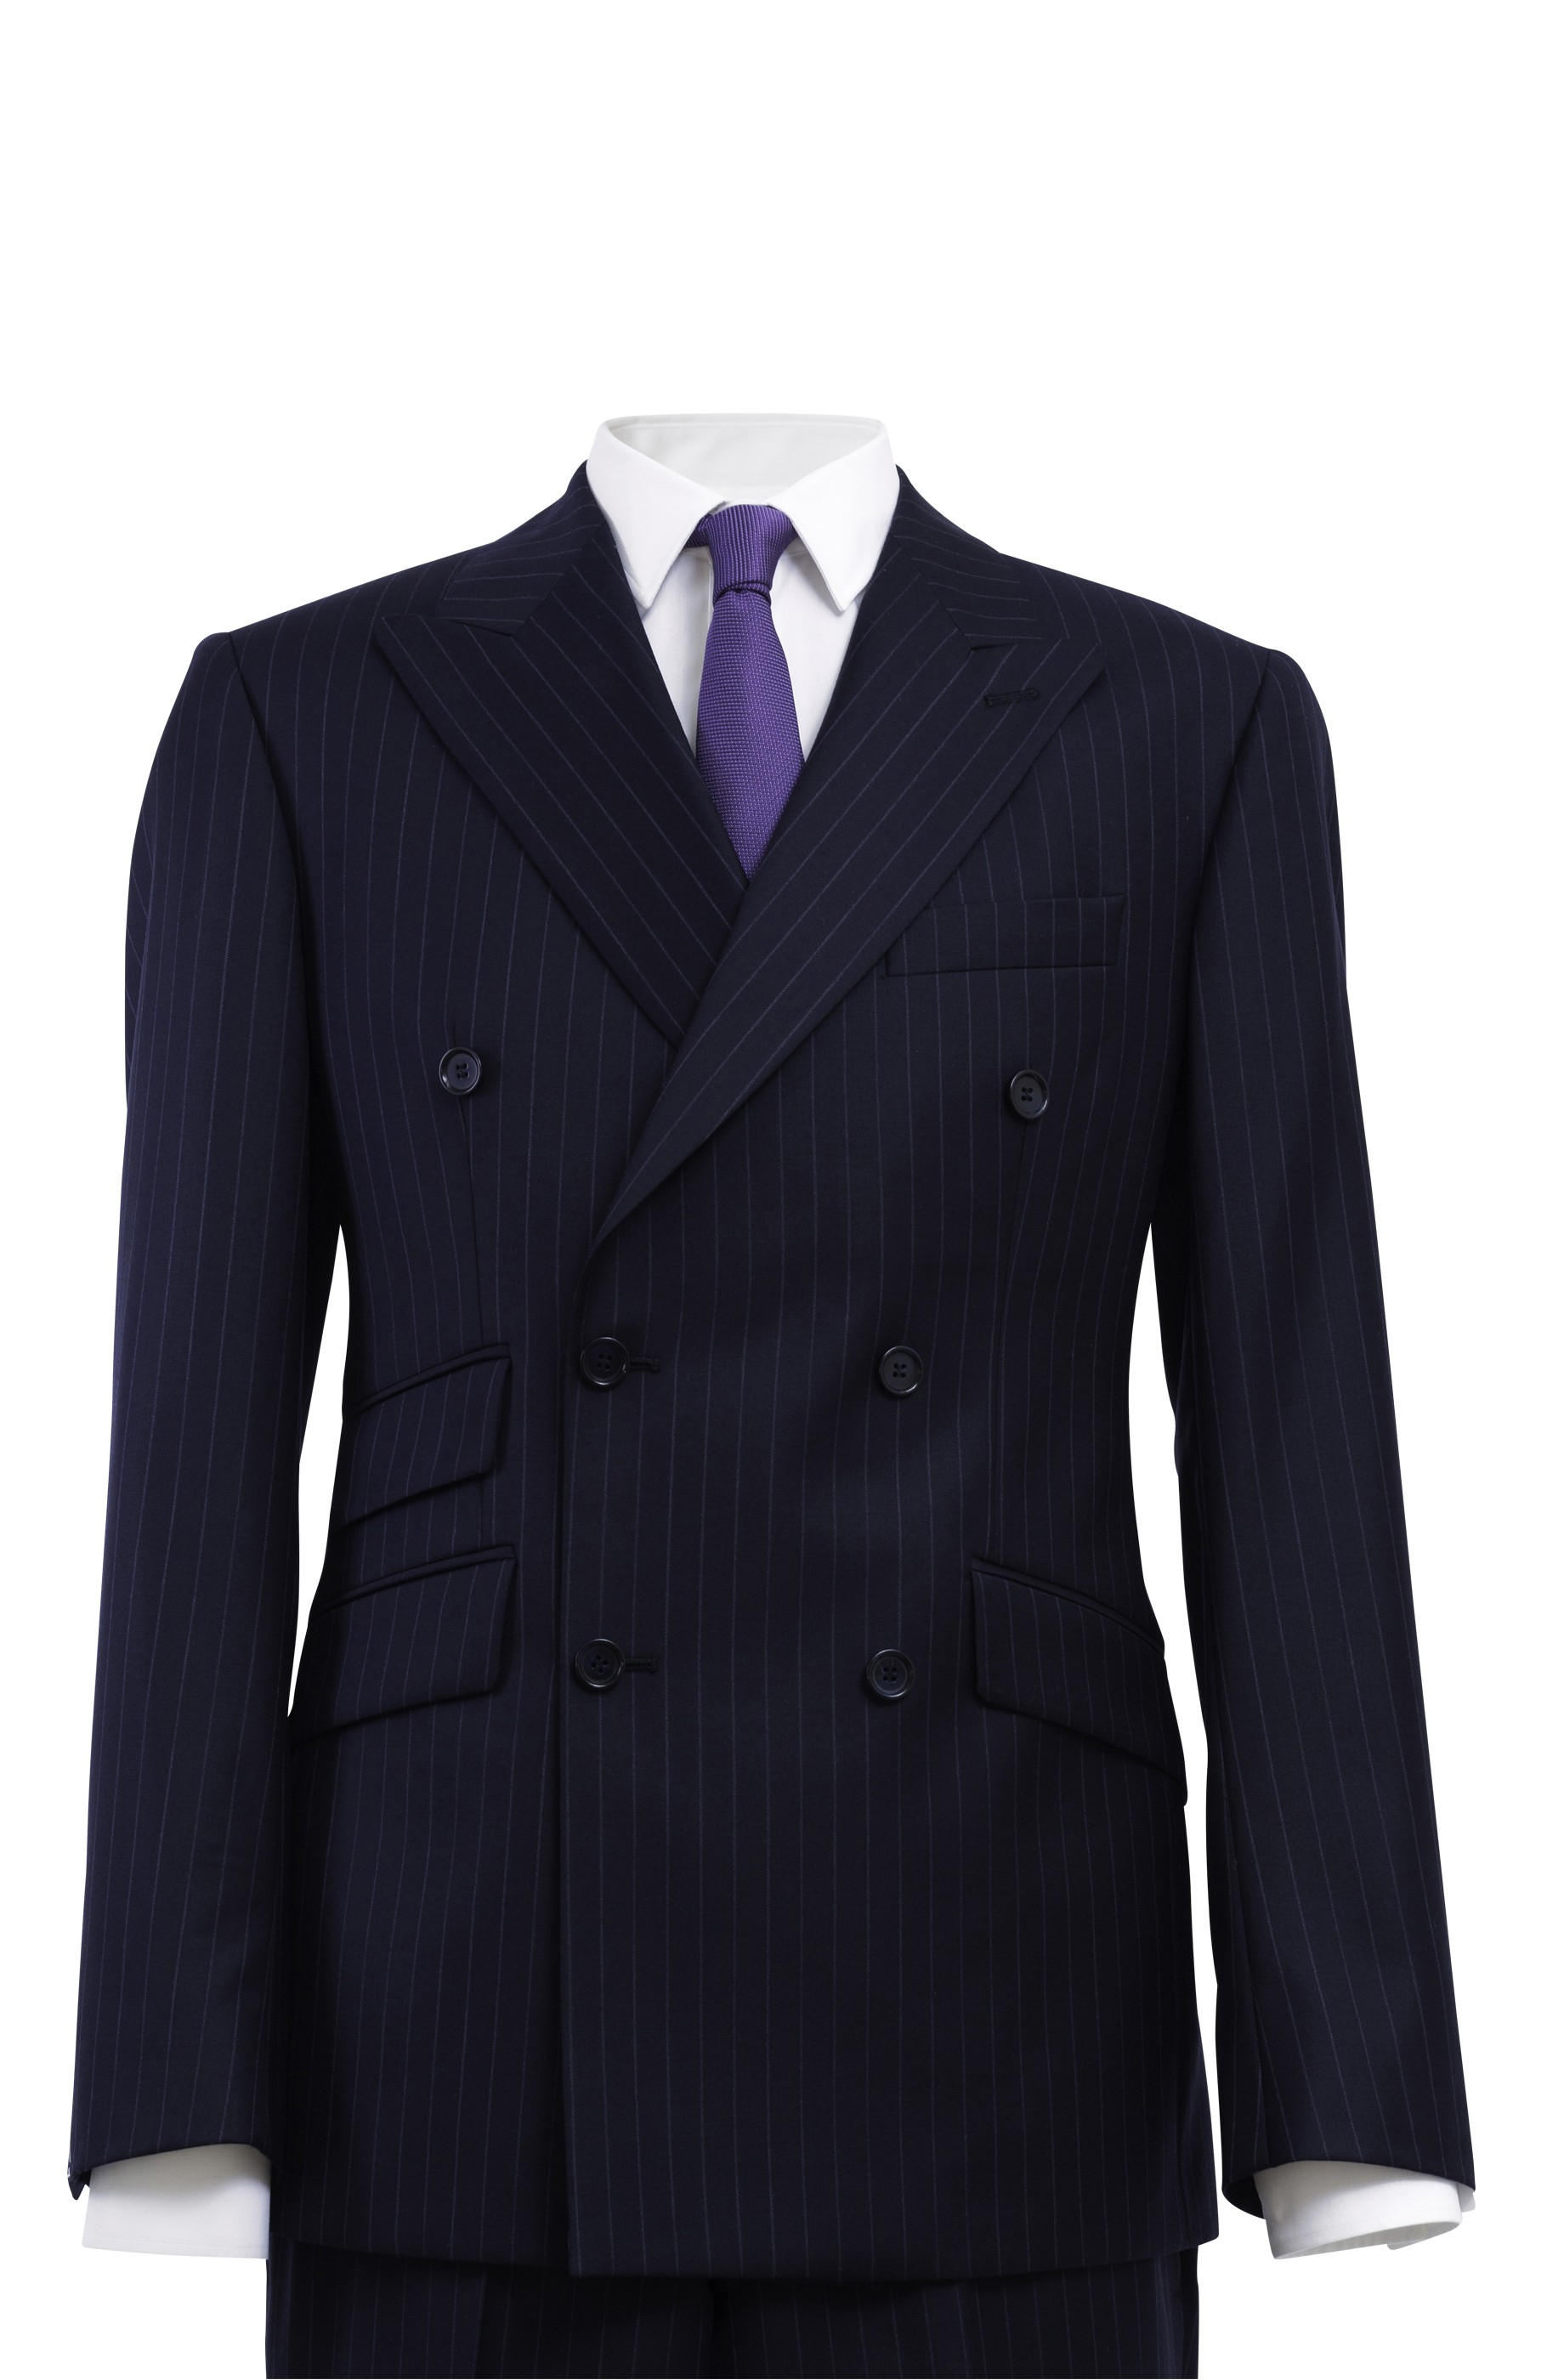 Majesté Couture Paris: SAINT GERMAIN NAVY DOUBLE-BREASTED SUIT - Hiphunters Shop